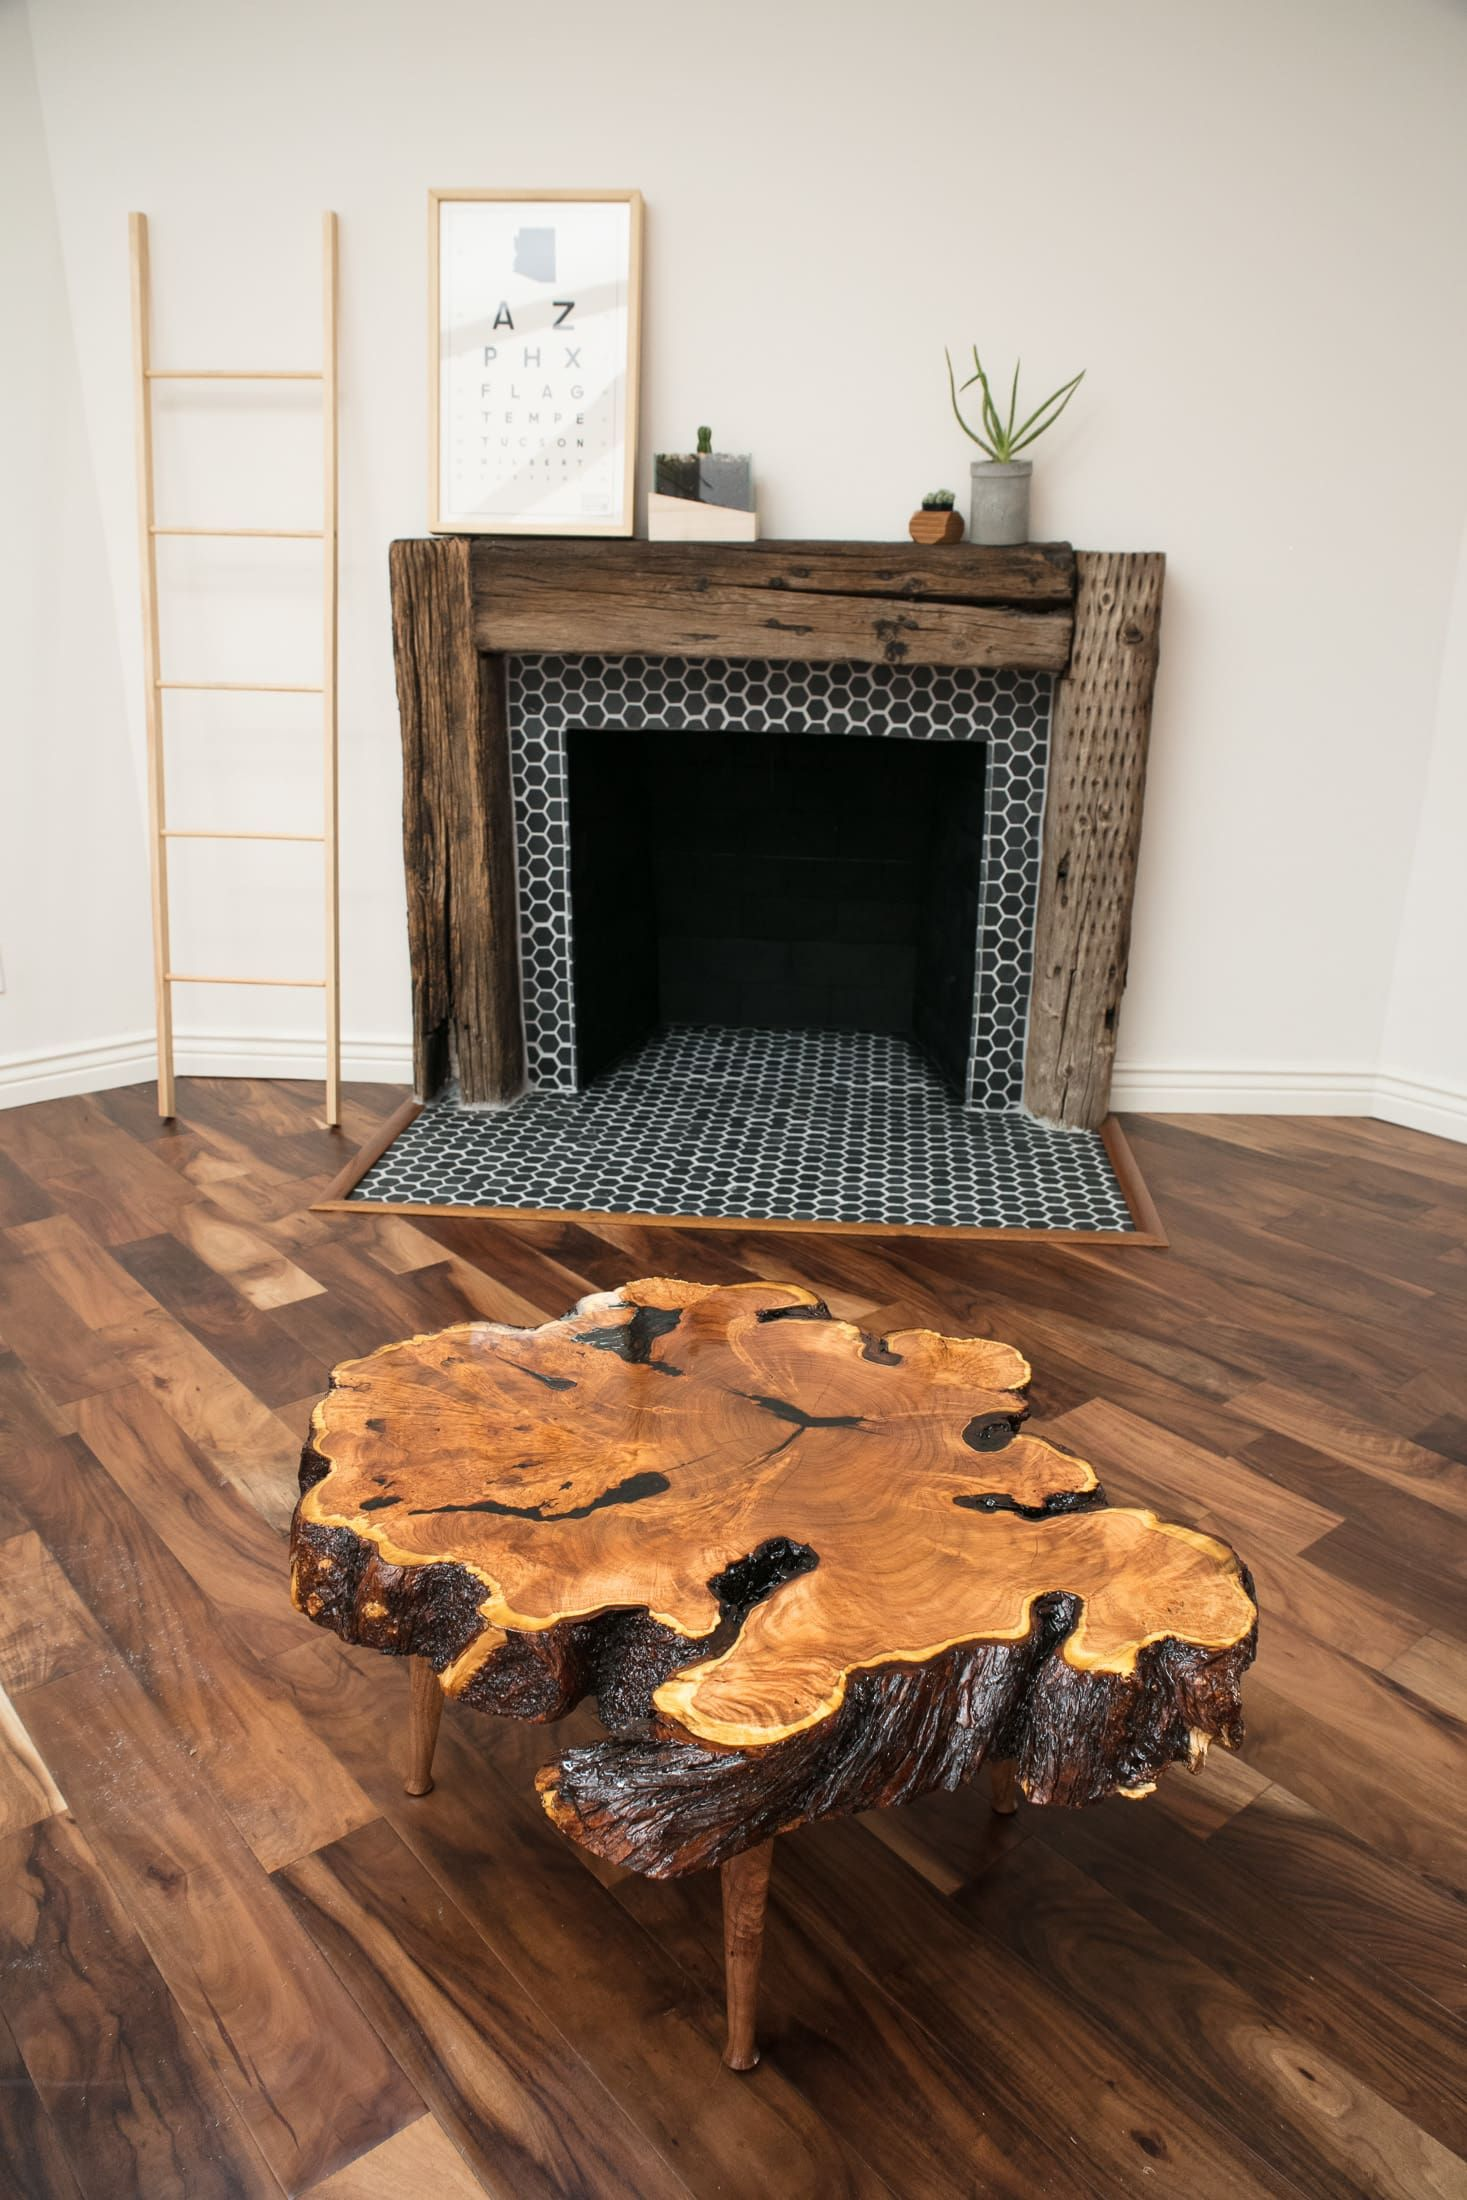 Rustic Mesquite Live Edge Coffee Table By Lumberlust Designs Seen At Carefree Drive Cave Creek Az Cave Creek Live Edge Coffee Table Mesquite Furniture Coffee Table